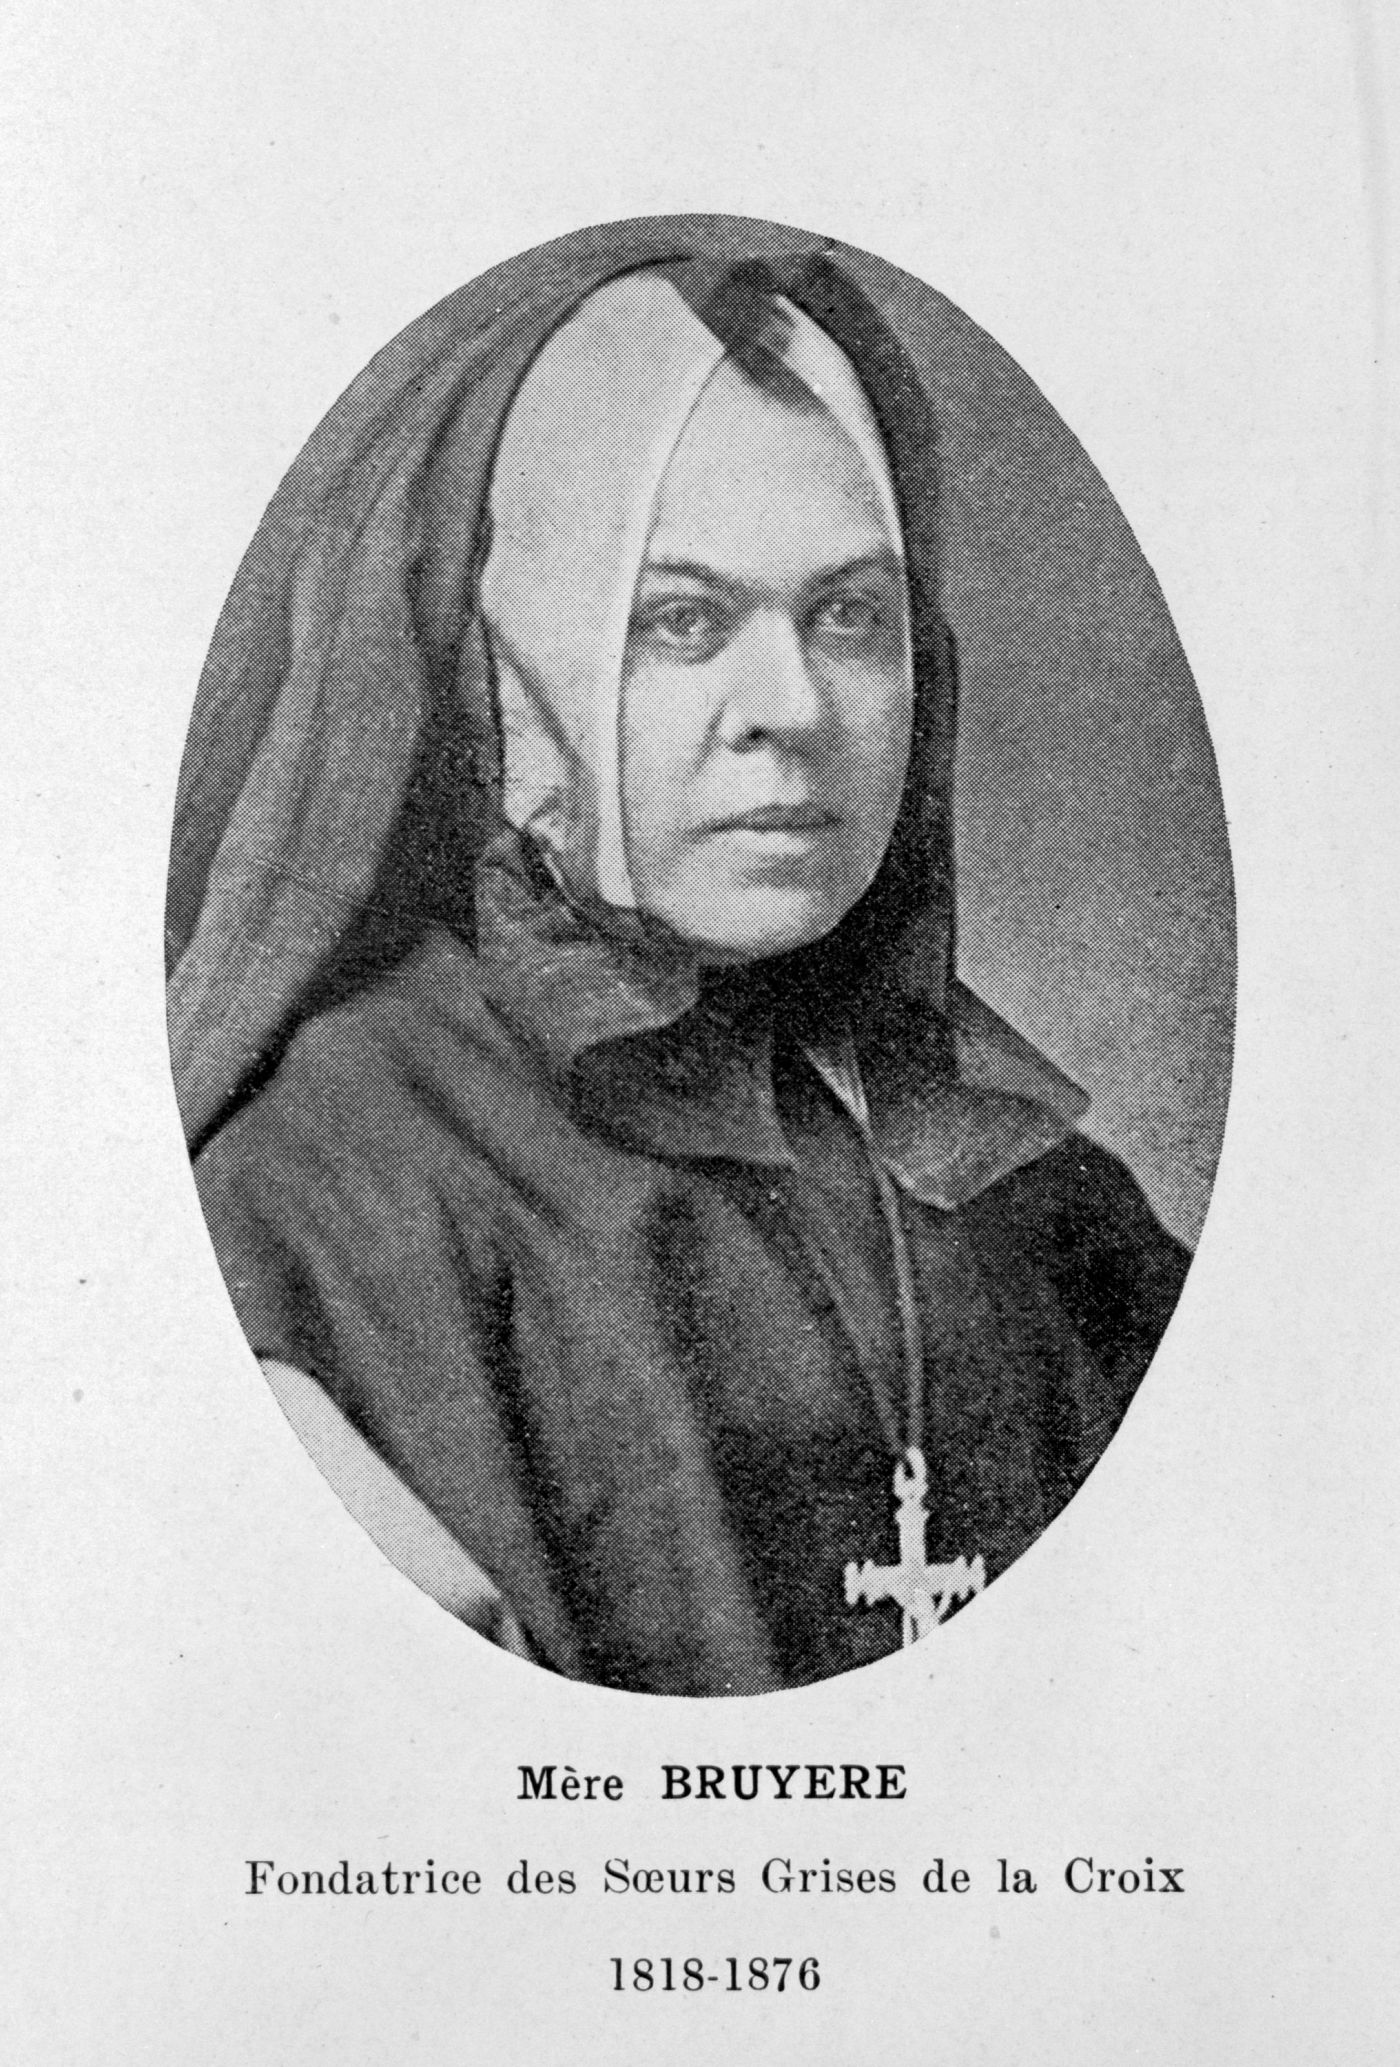 Page from a book, with a black and white photograph of a middle-aged nun. A text typed in French accompanies the photo. The nun is wearing a black coat and veil, as well as a large cross.